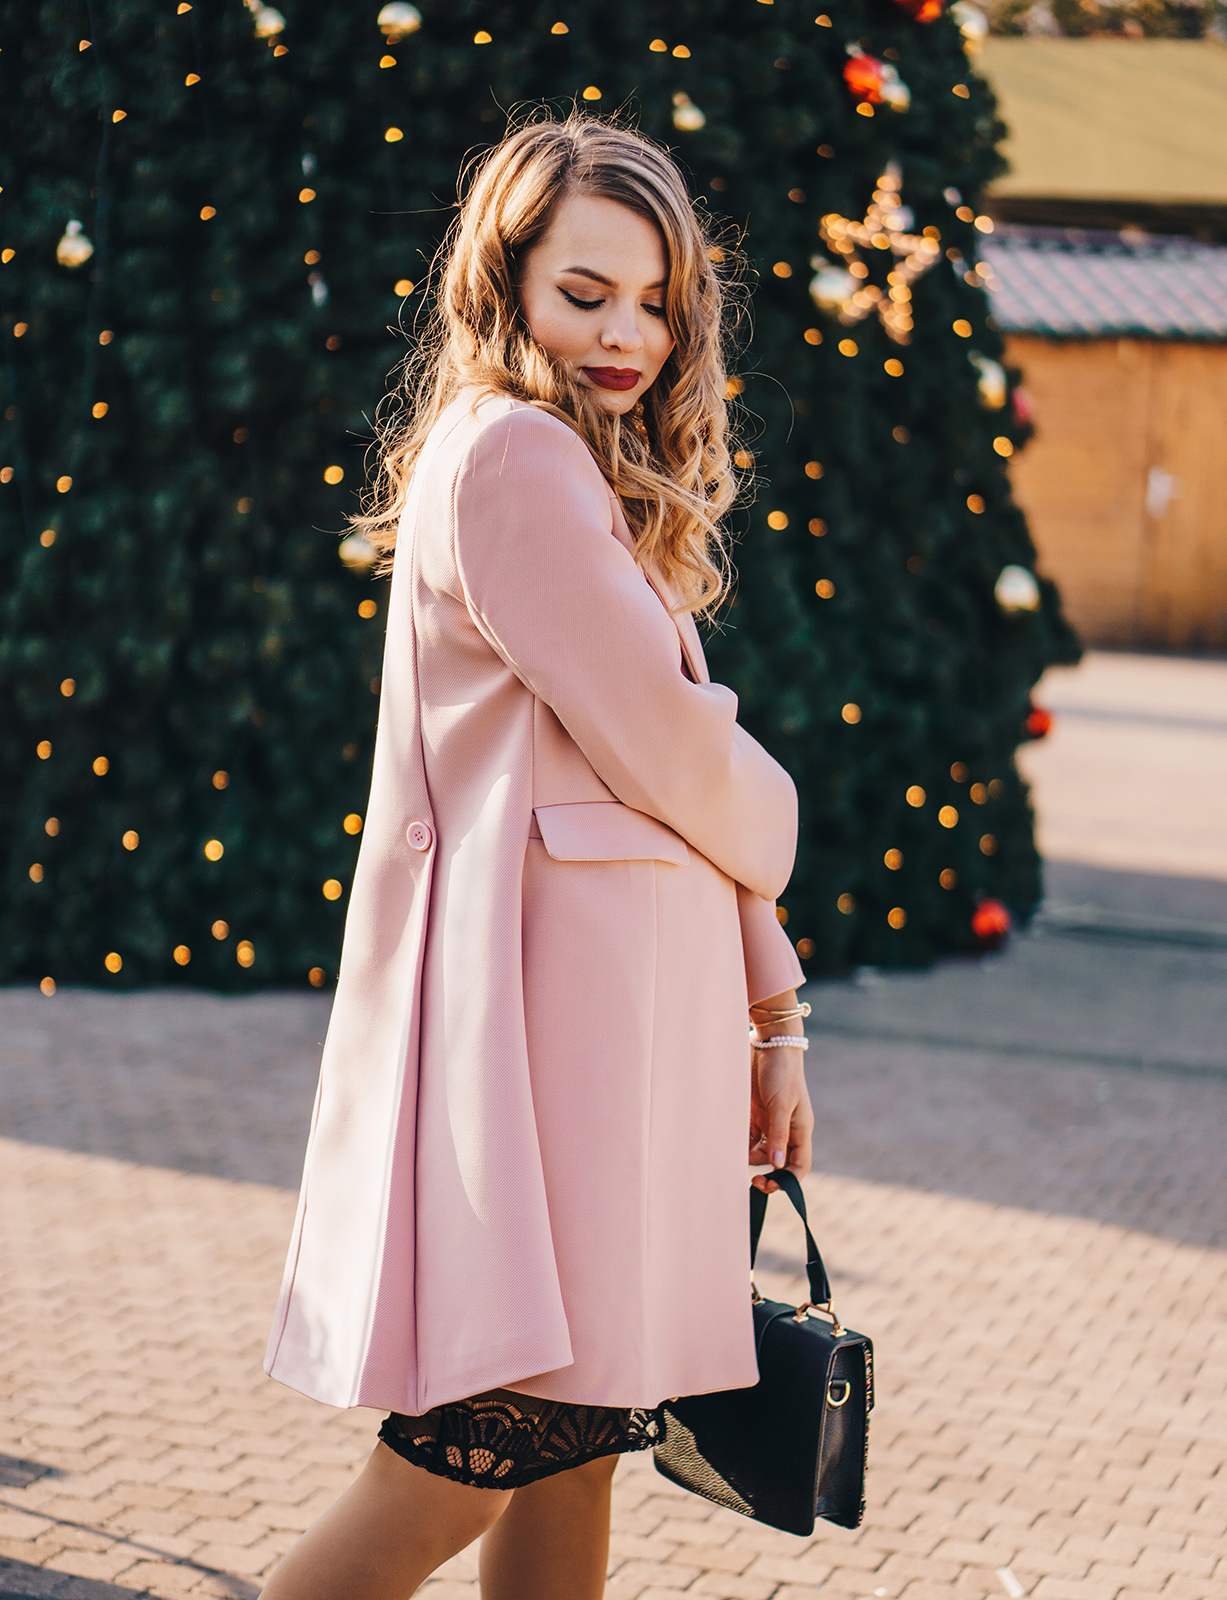 Little black dress - the perfect classy Christmas outfitPink Wish